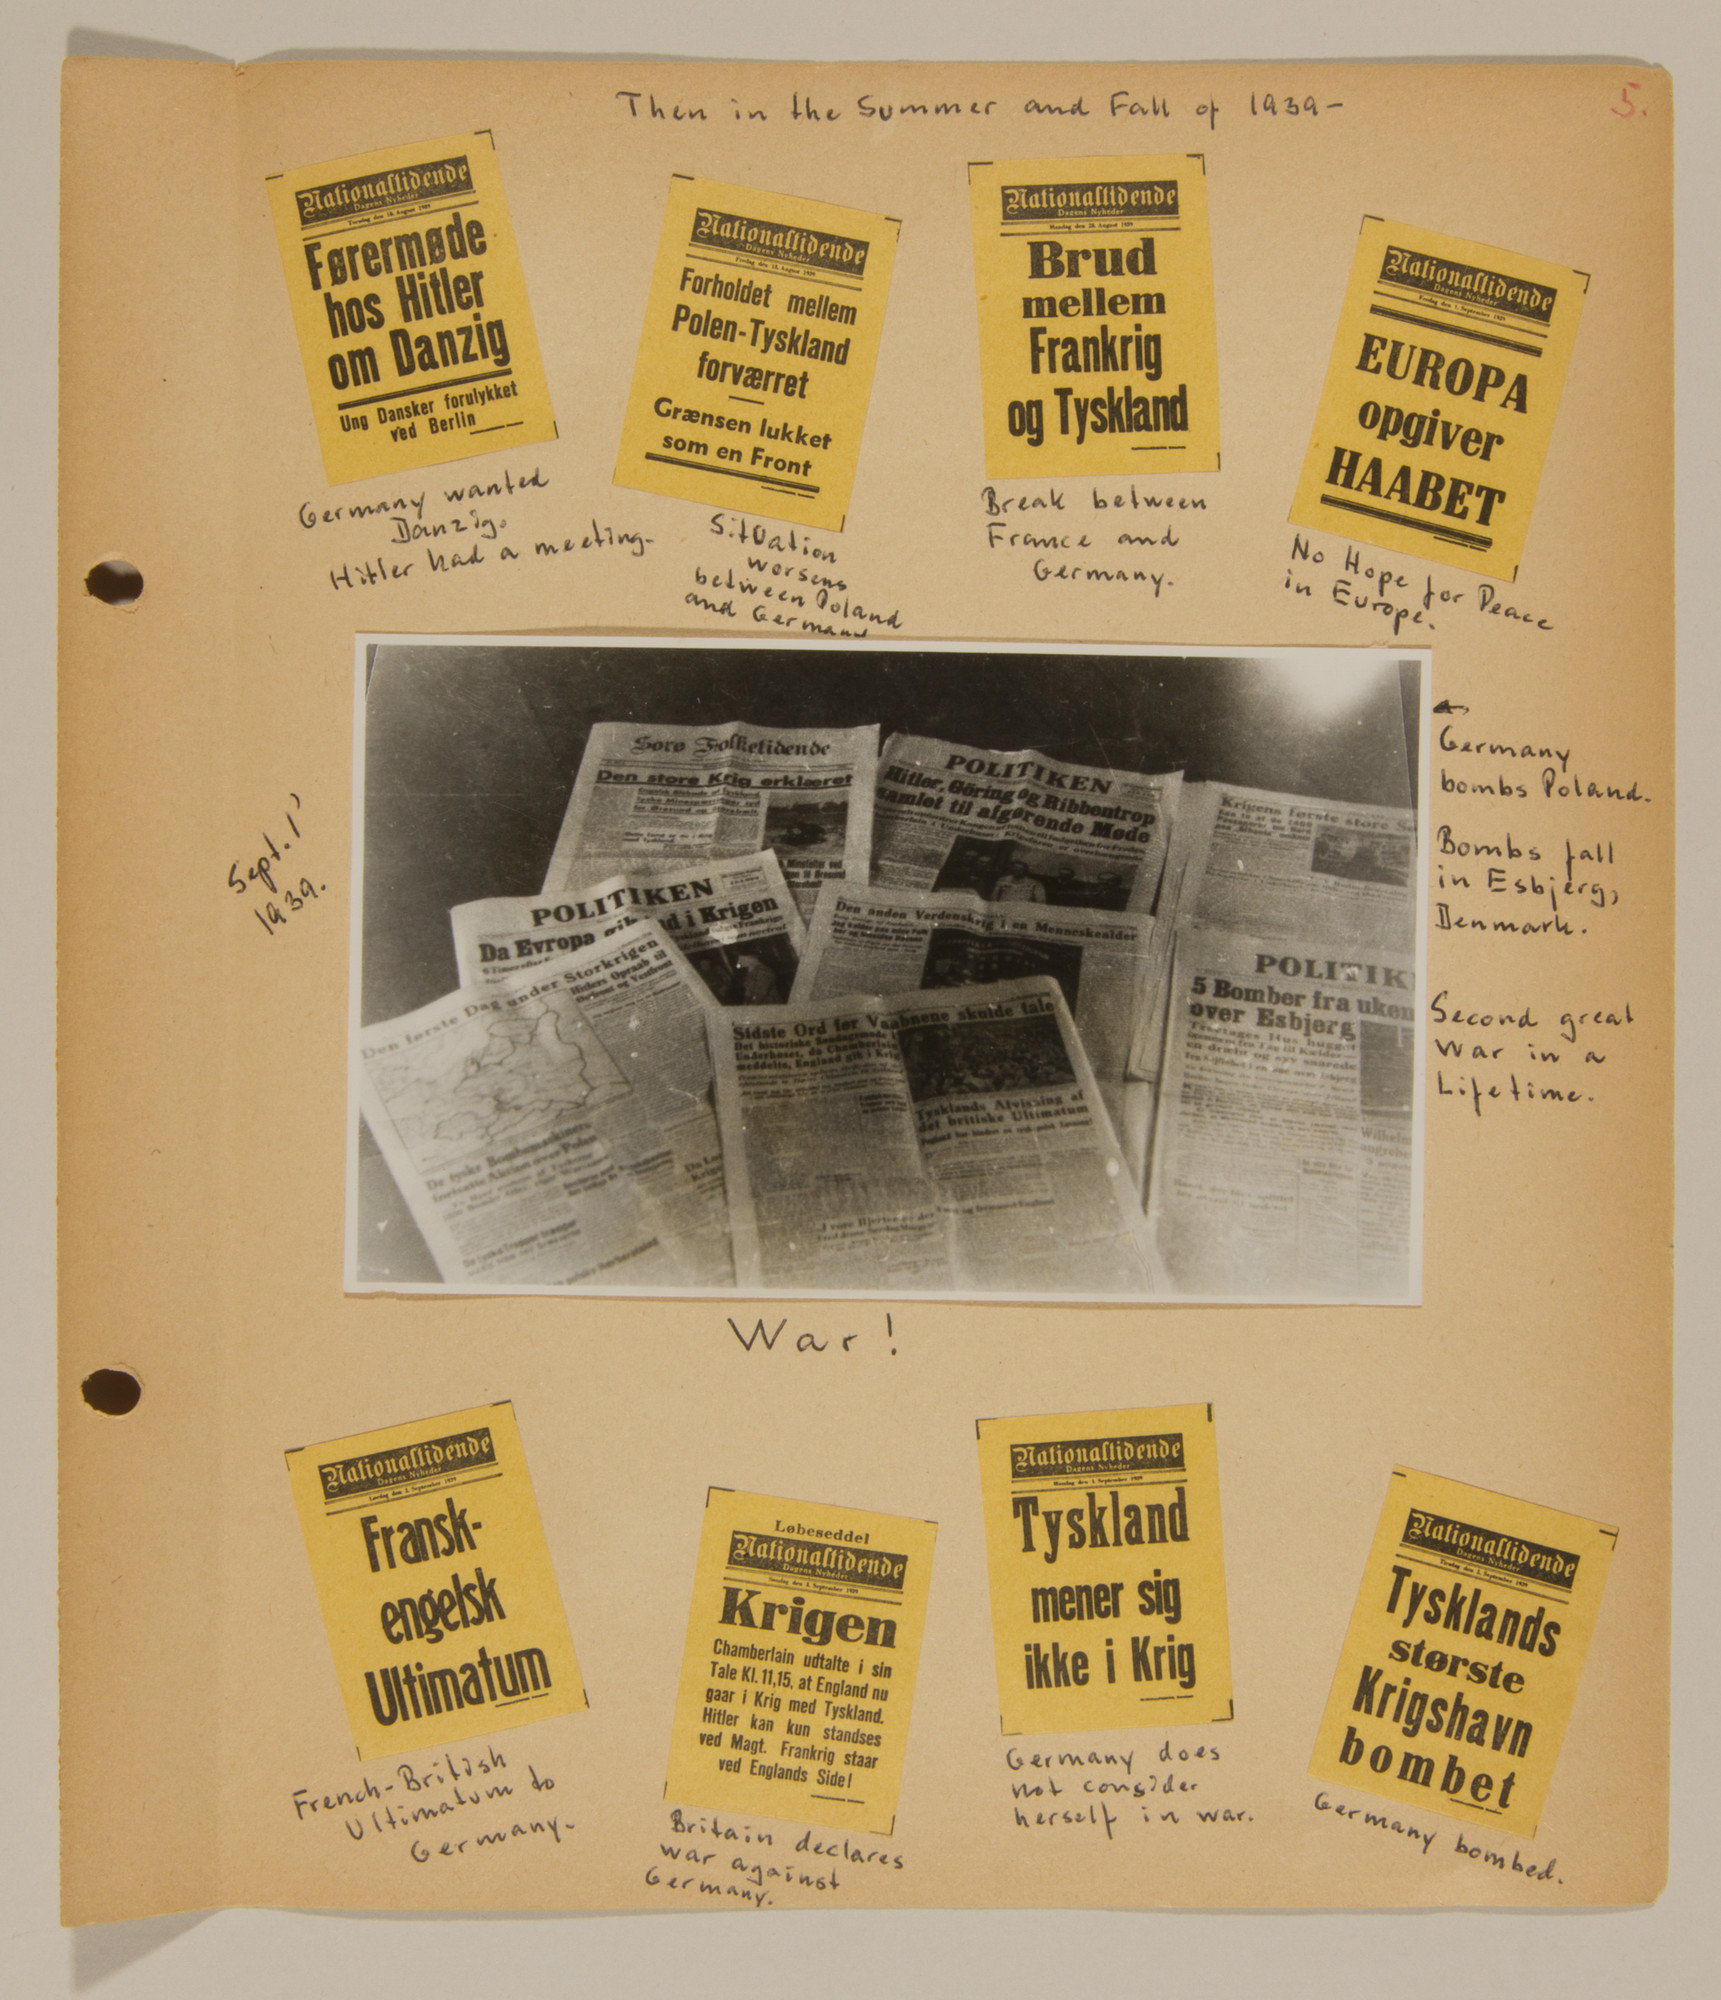 Page from volume one of a set of scrapbooks compiled by Bjorn Sibbern, a Danish policeman and resistance member, documenting the German occupation of Denmark.  This page has press headlines from the summer and fall of 1939.